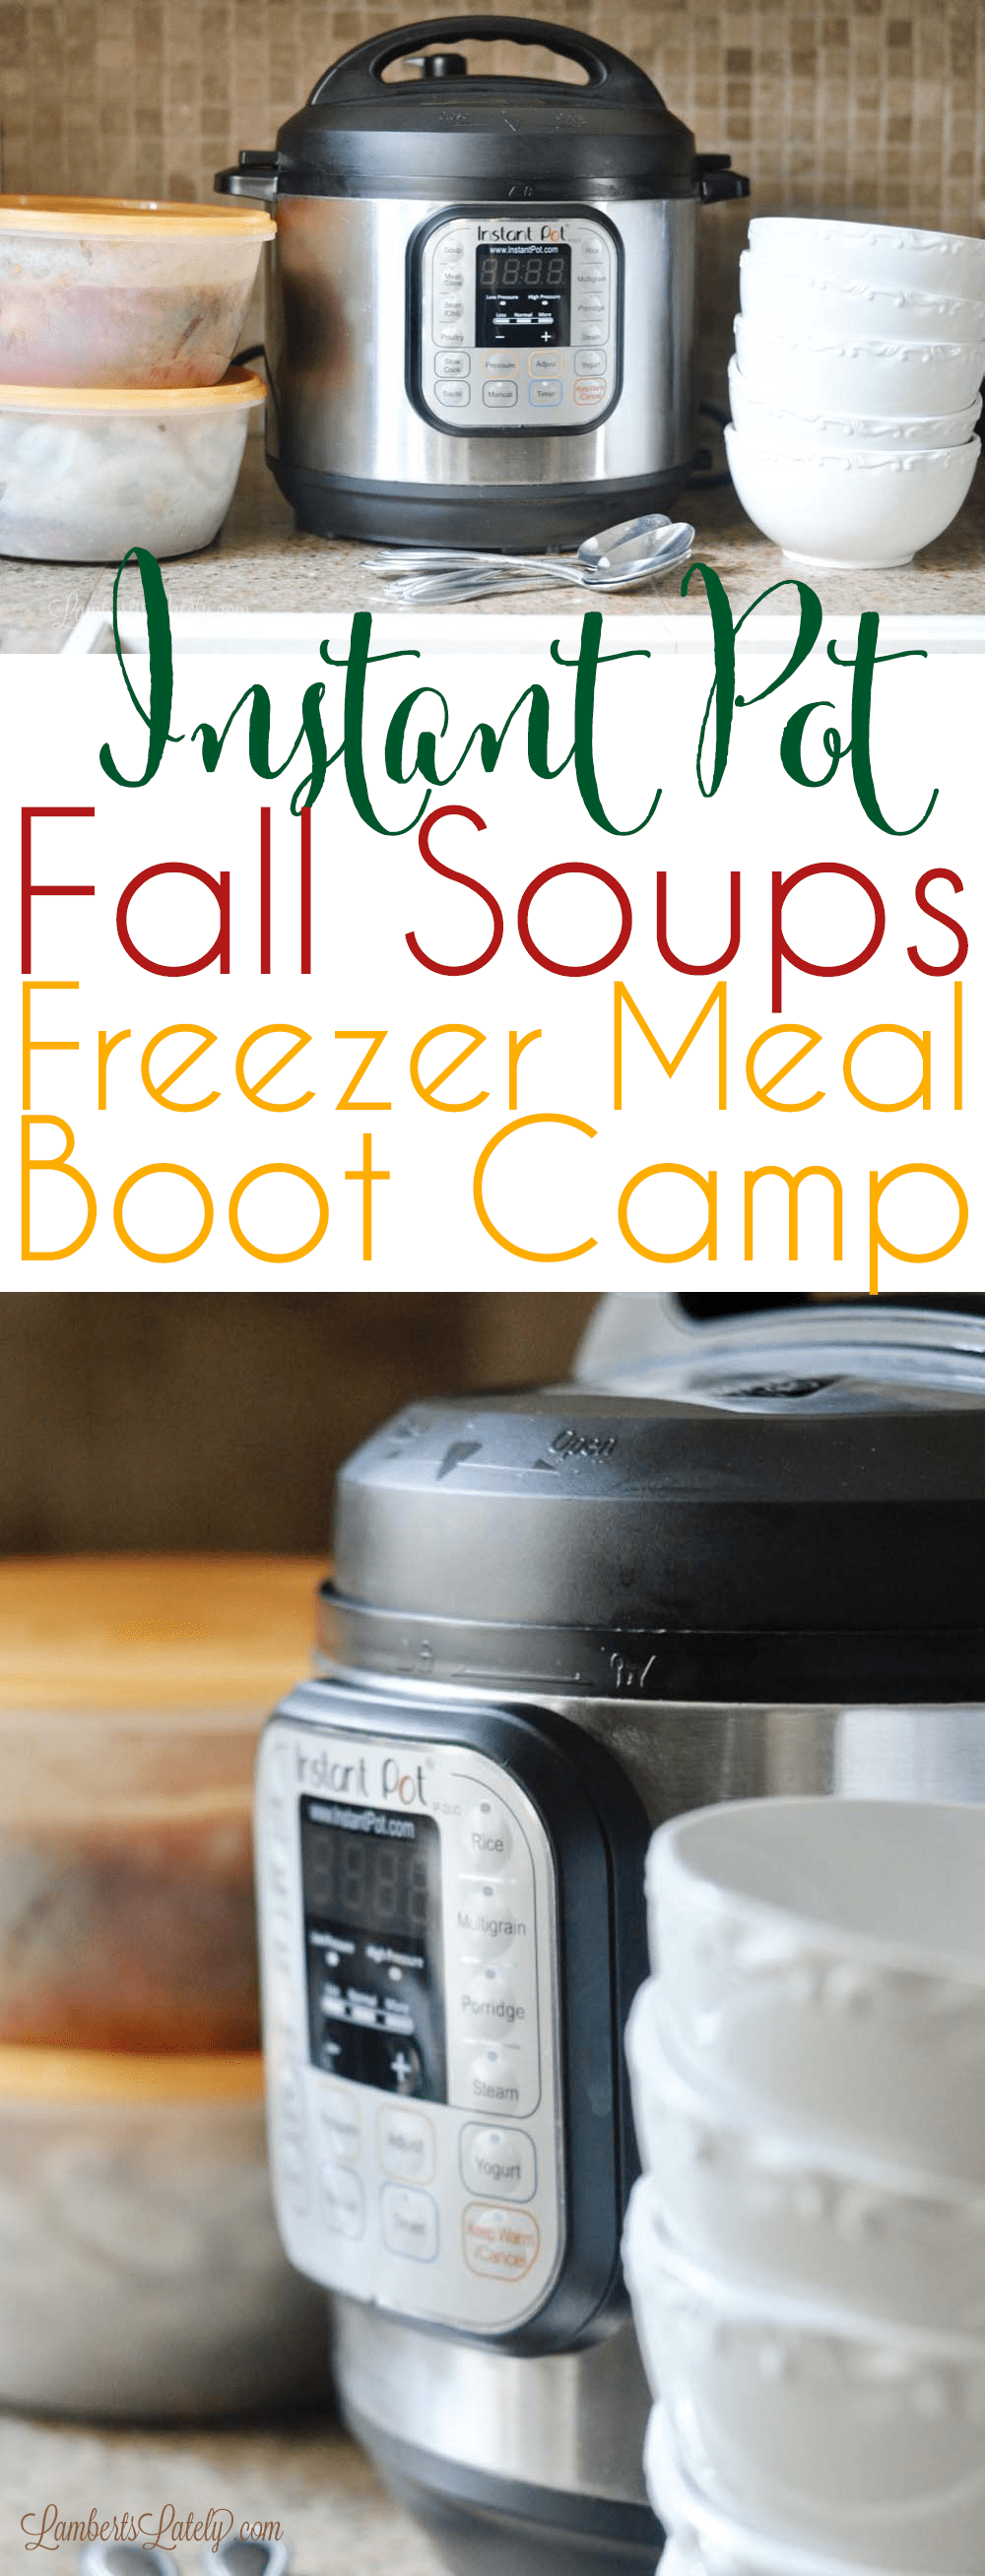 The newest Instant Pot Freezer Meal Boot Camp is all about fall soup recipes! Check out this selection of cheap easy monthly recipes that has chilis, soups, and stews. Carrot Butternut Squash Soup || Firefighter Chili || Sausage & White Bean Stew || French Onion Chicken Soup || Italian Wedding Soup